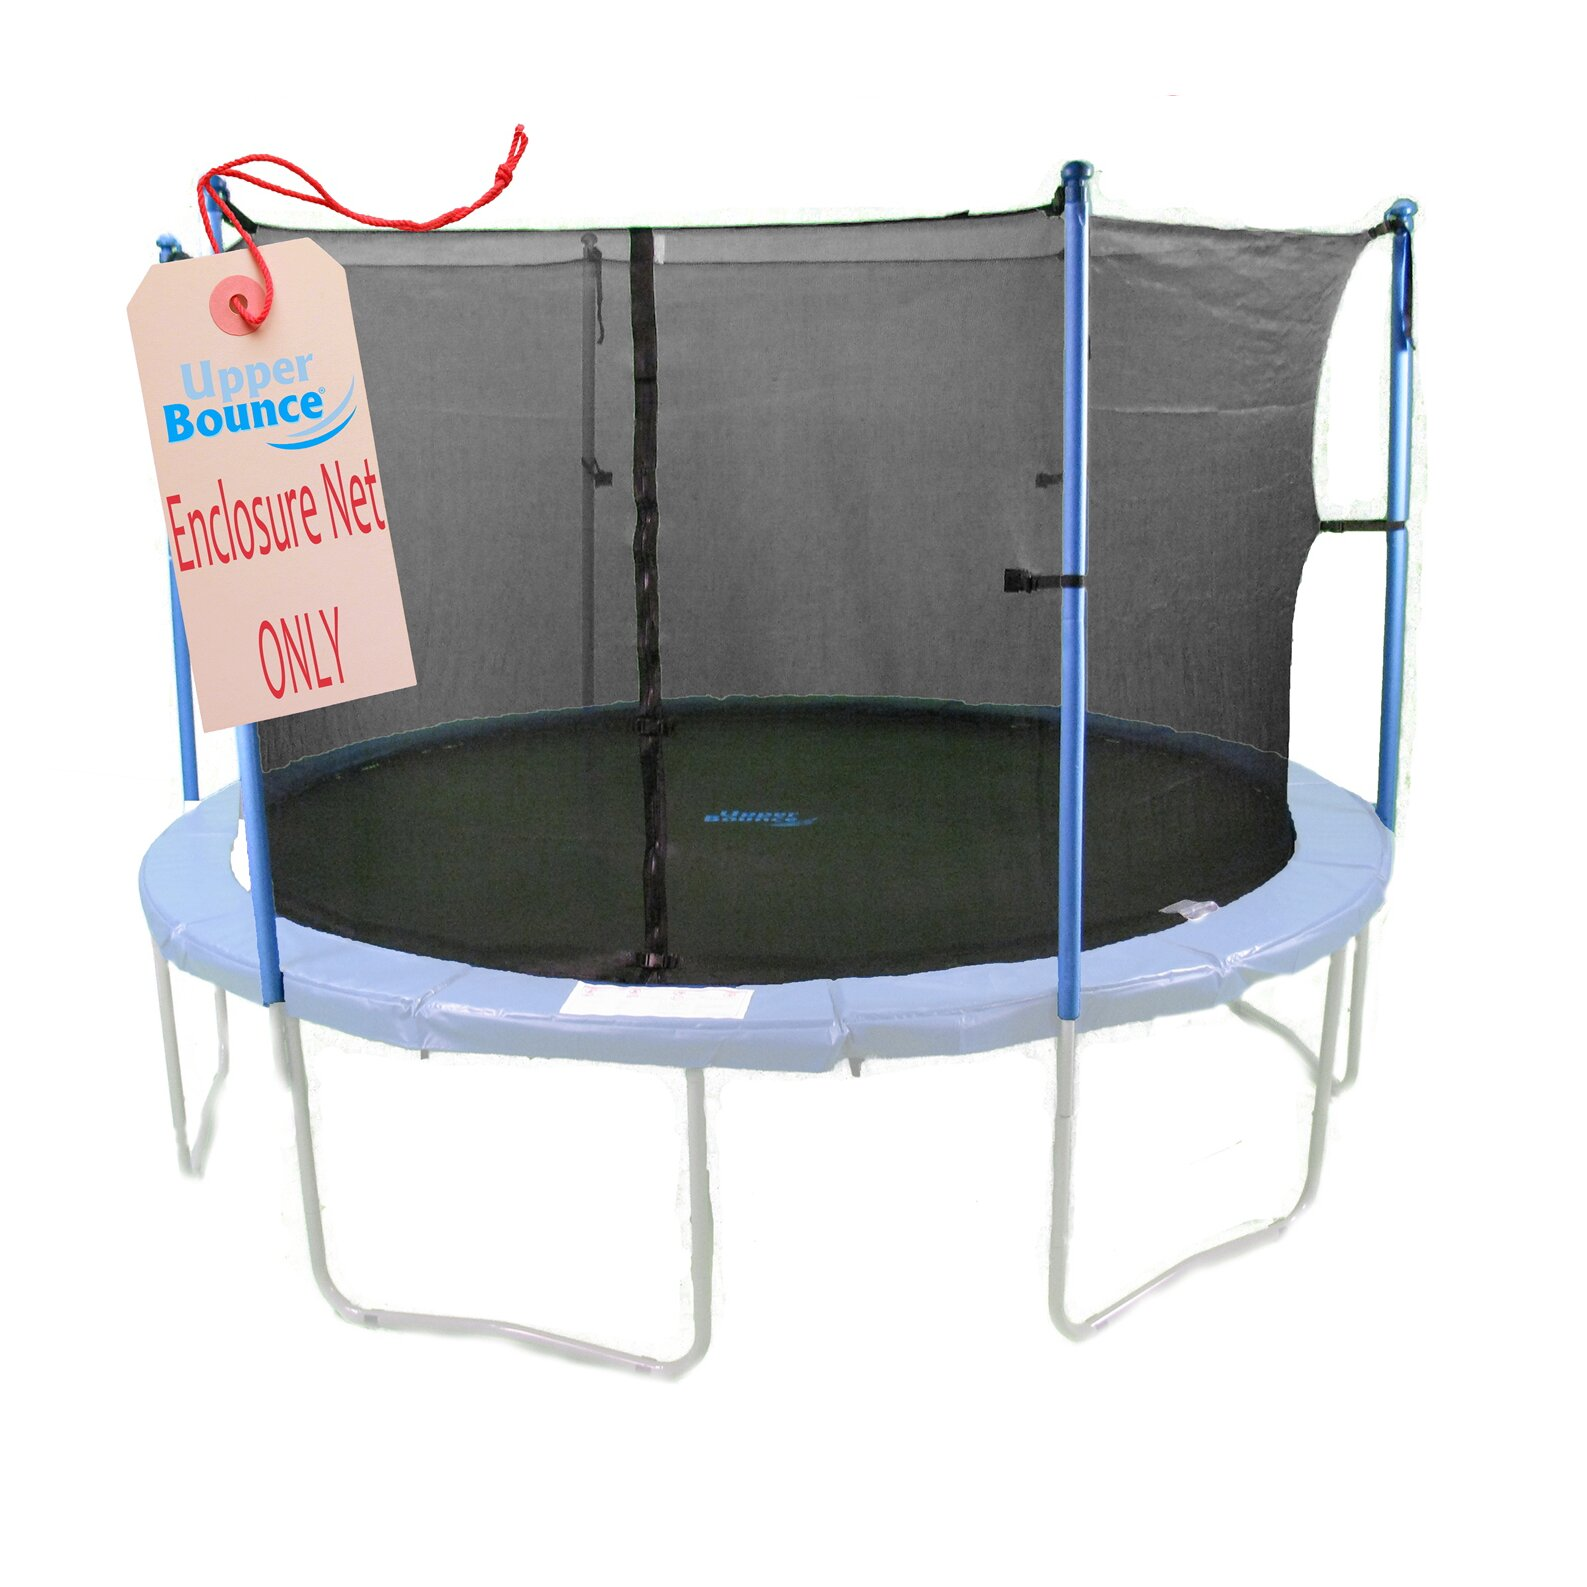 Propel 14 Trampoline With Fun Ring Enclosure: Upper Bounce 14' Round Trampoline Net Using 4 Poles Or 2